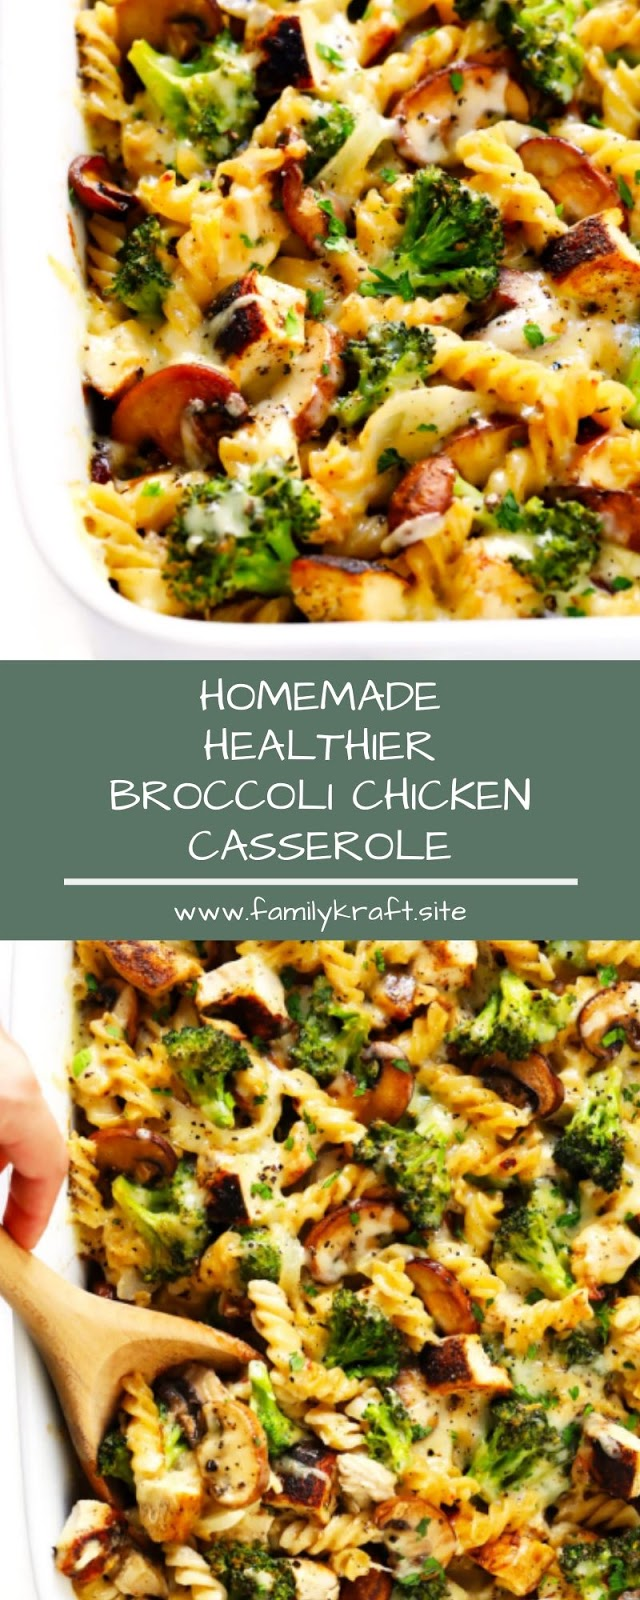 HOMEMADE HEALTHIER BROCCOLI CHICKEN CASSEROLE